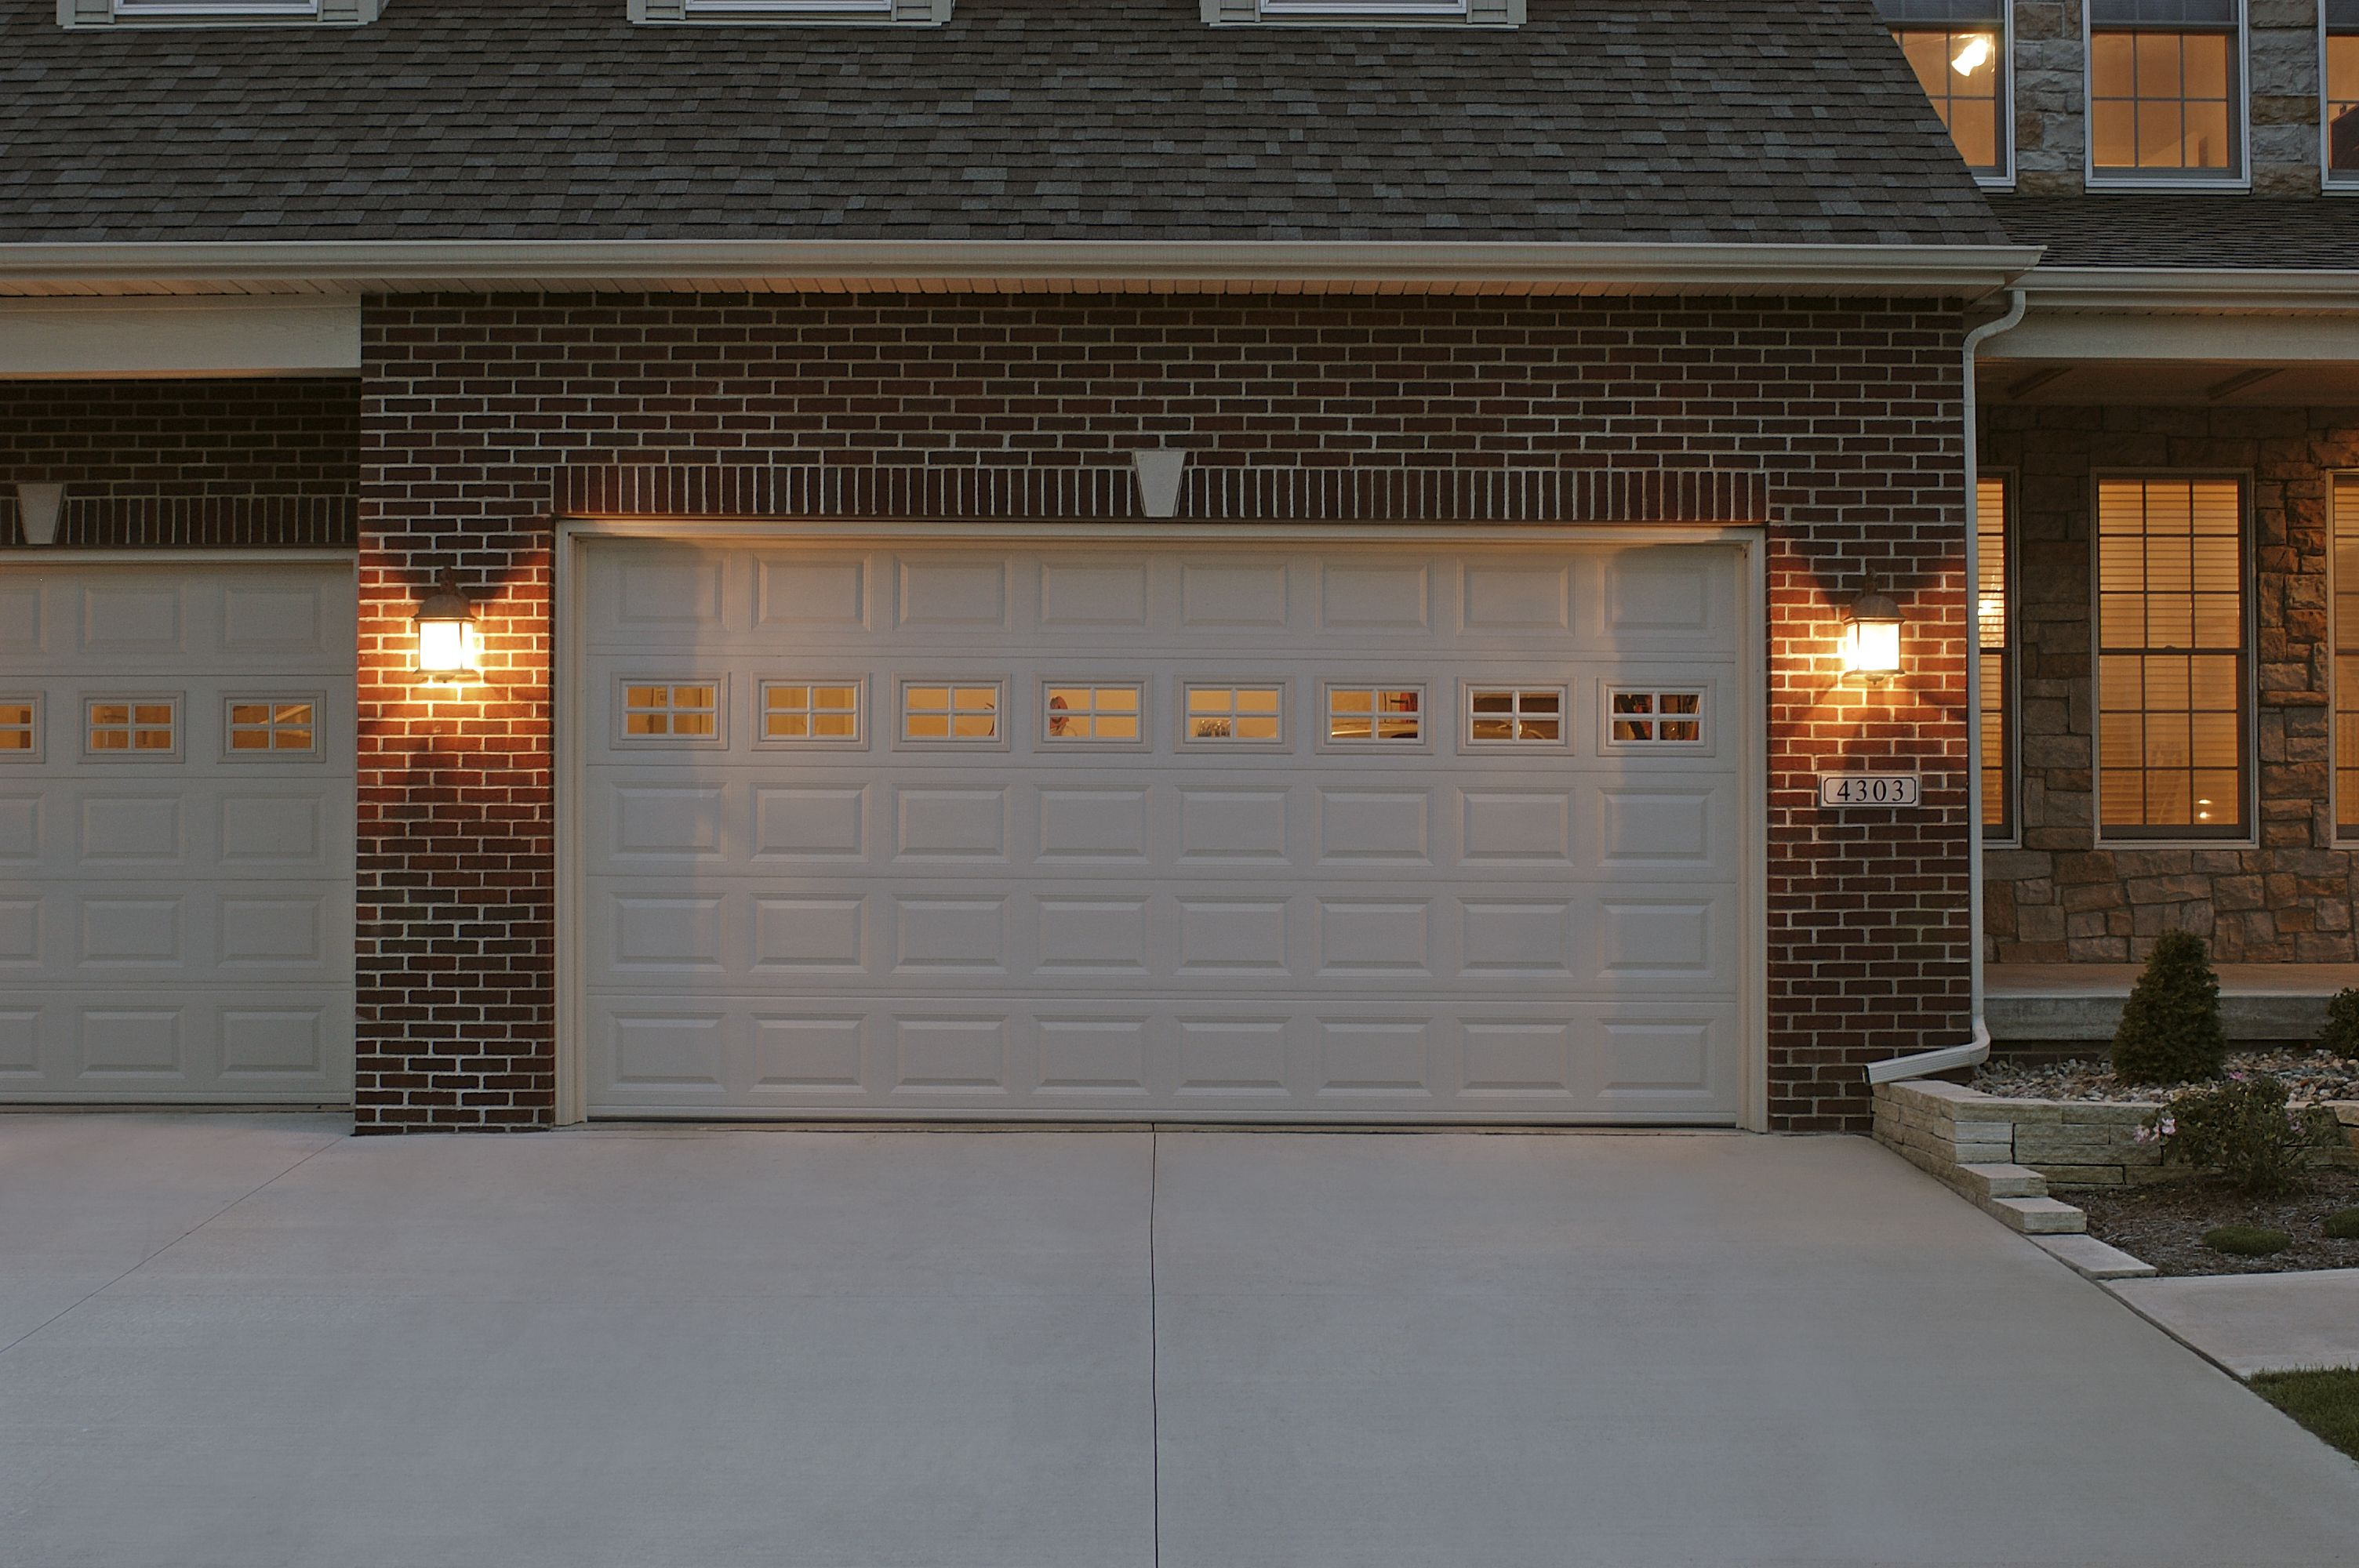 Raised Panel Garage Doors Chi Overhead Doors Garage Door Design Raised Panel Garage Doors